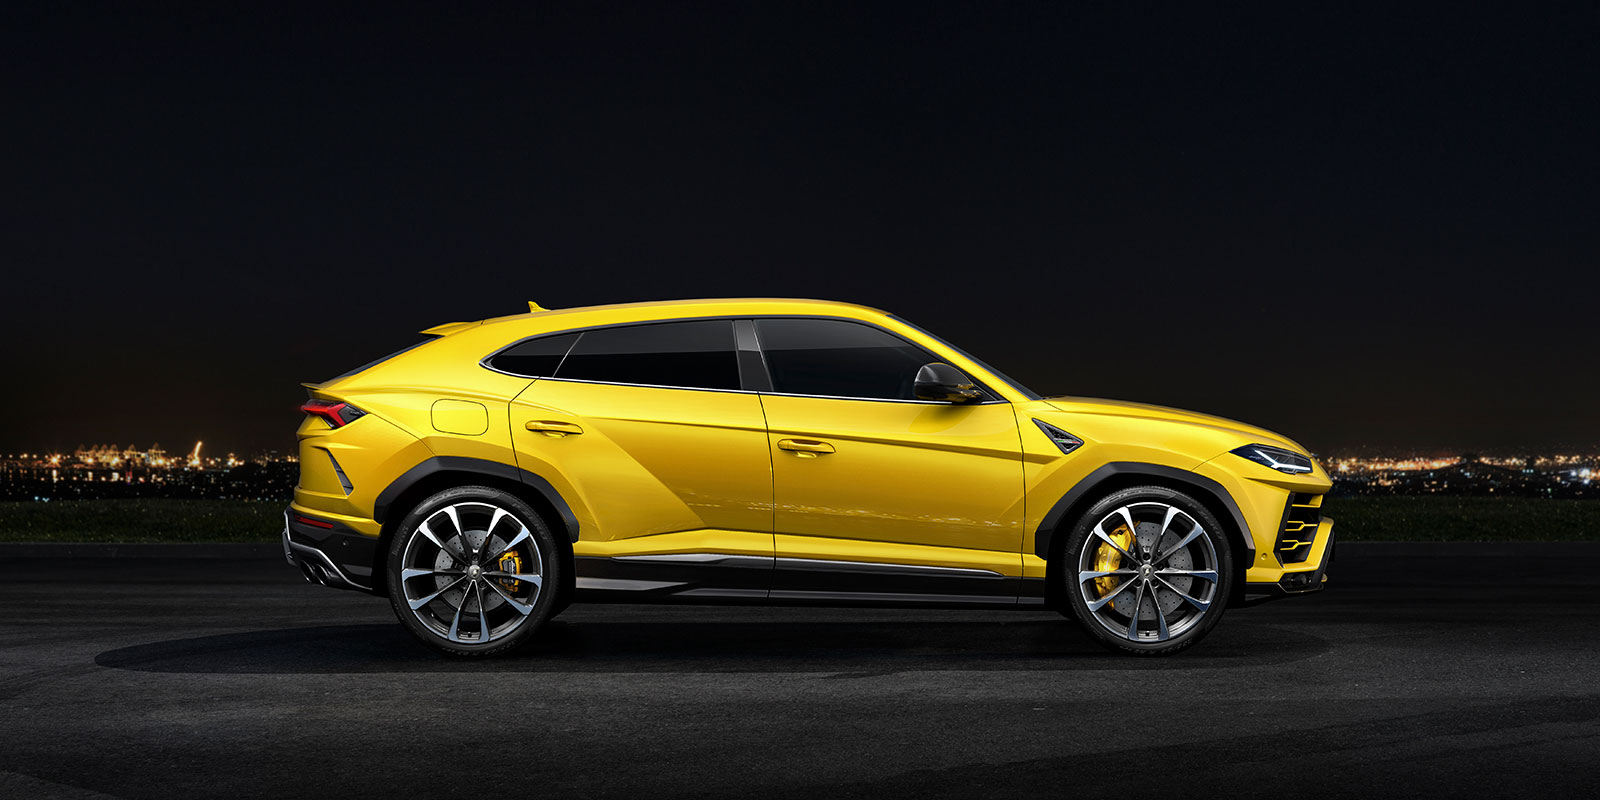 Lamborghini Urus - The World's First Super Sport Utility Vehicle image 7